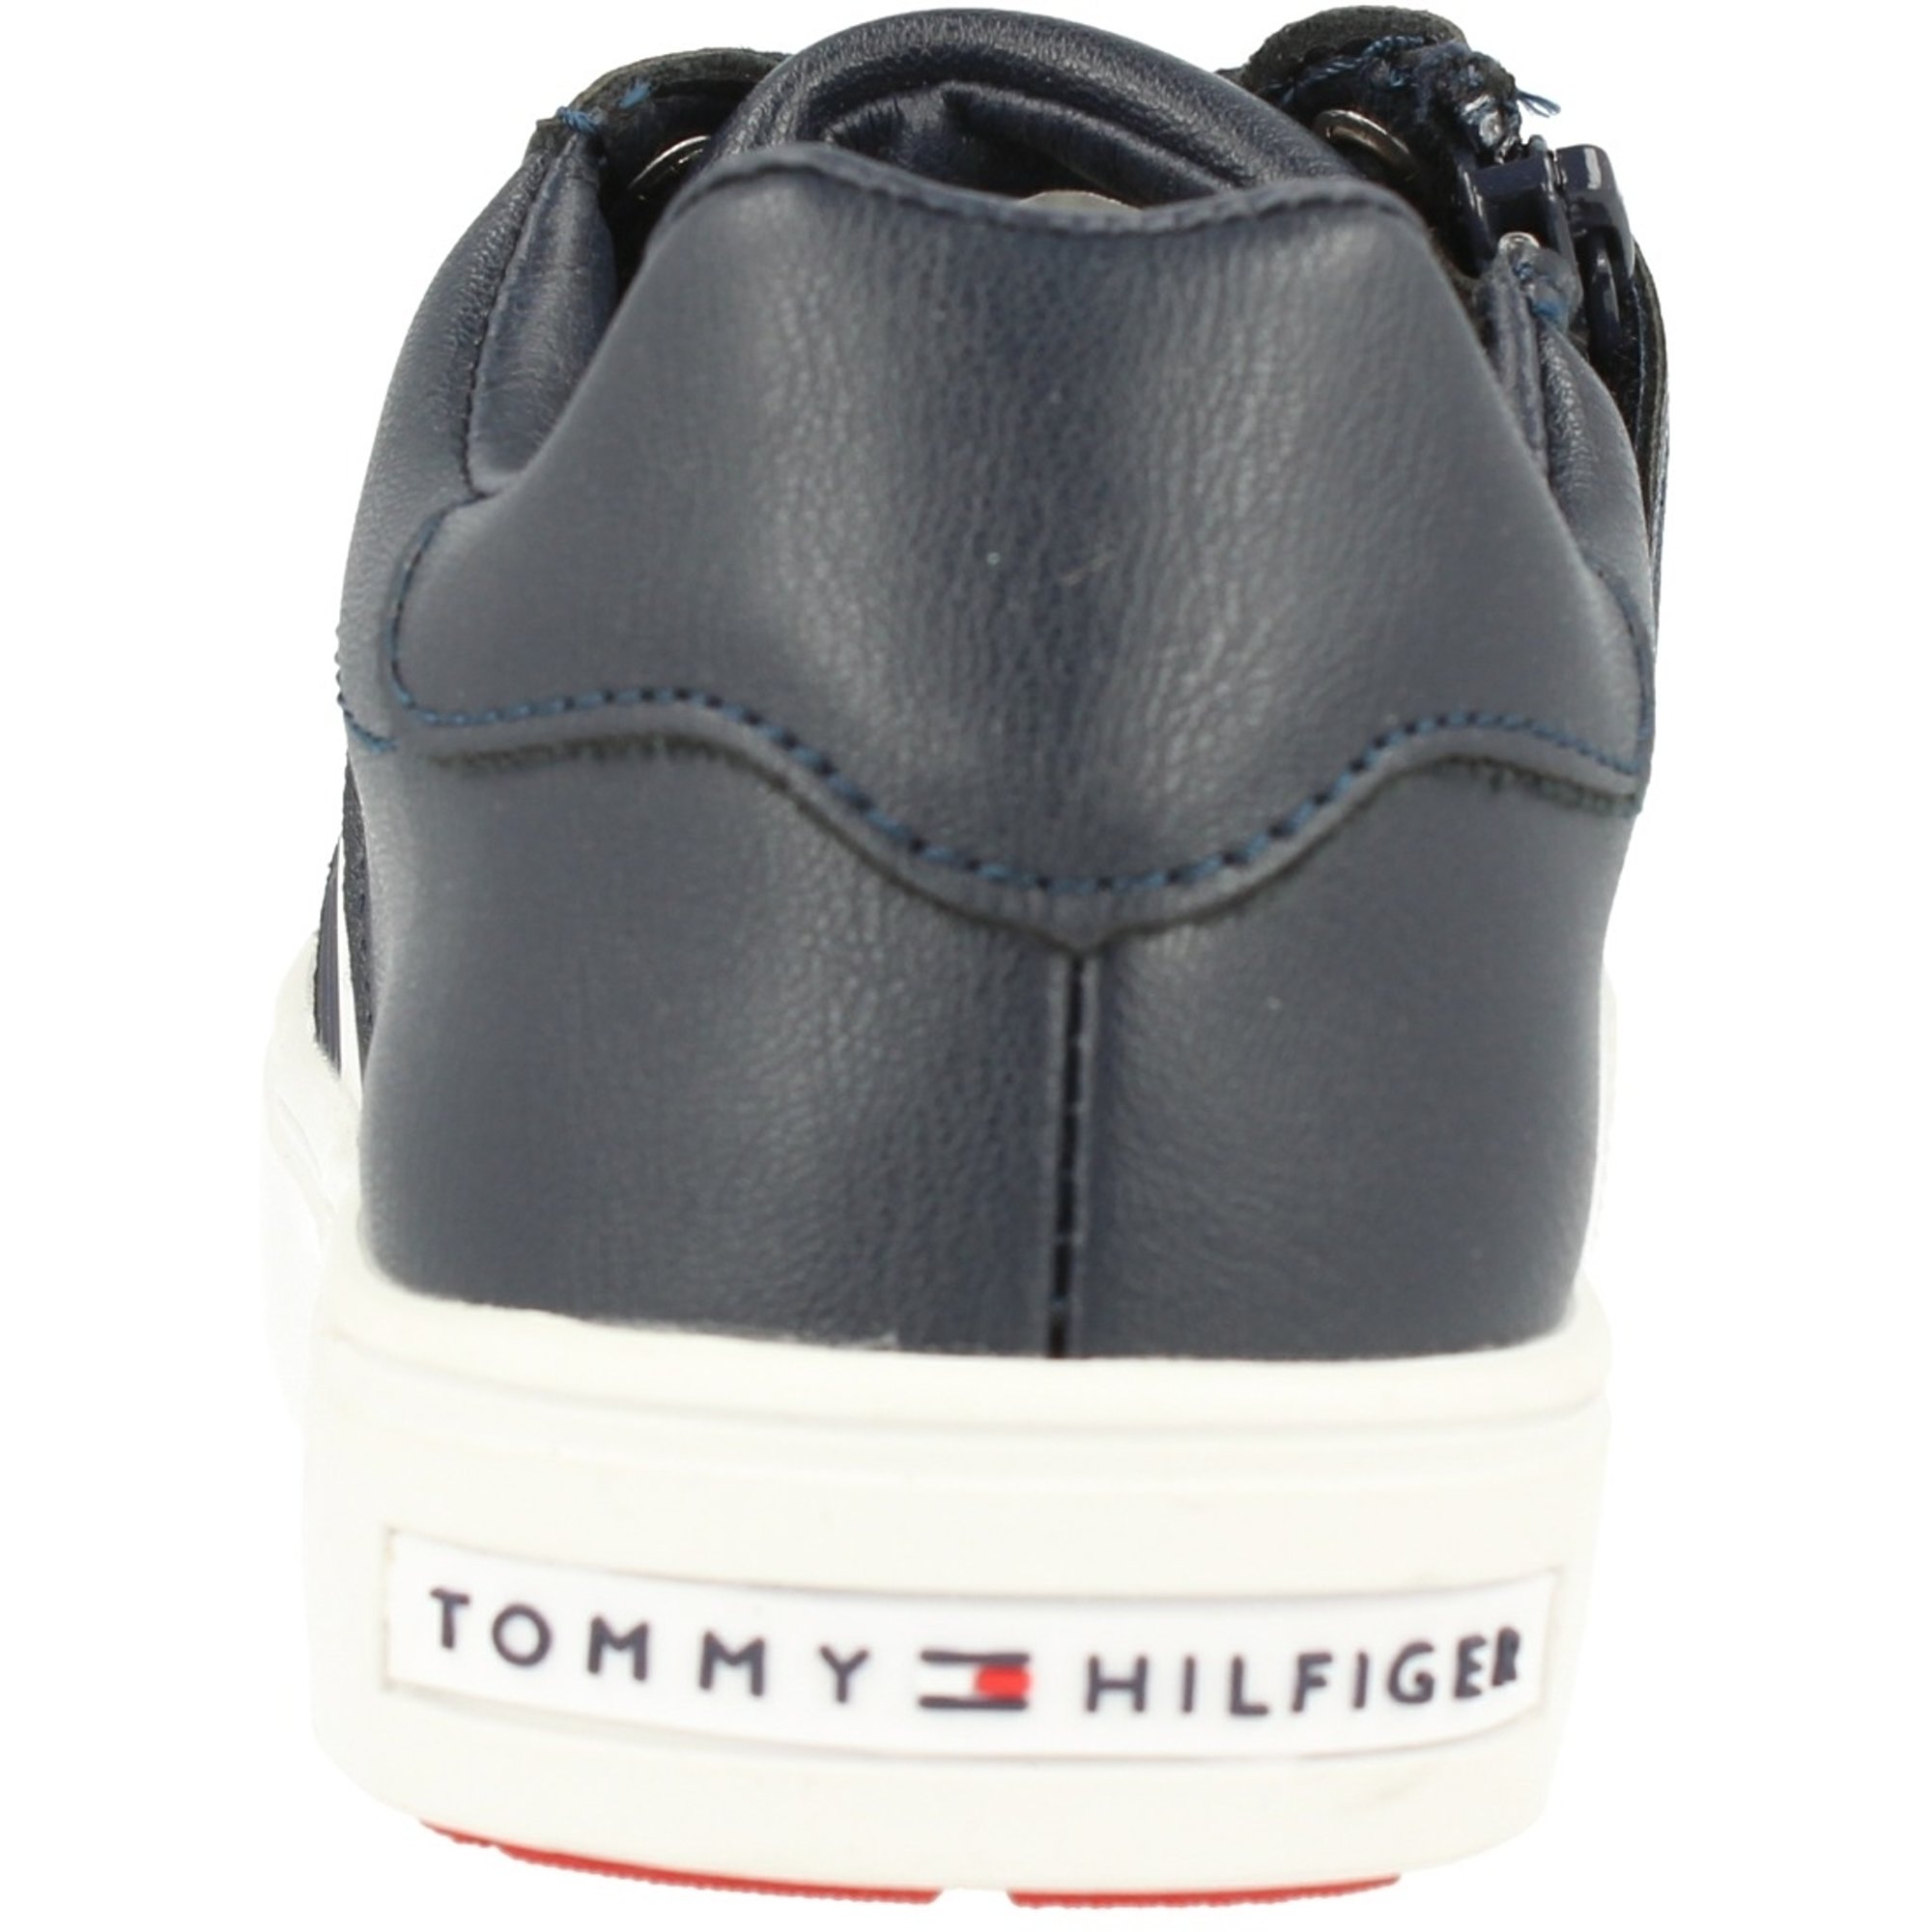 Tommy Hilfiger T3B4-30099-0193 Blue Eco Leather Youth